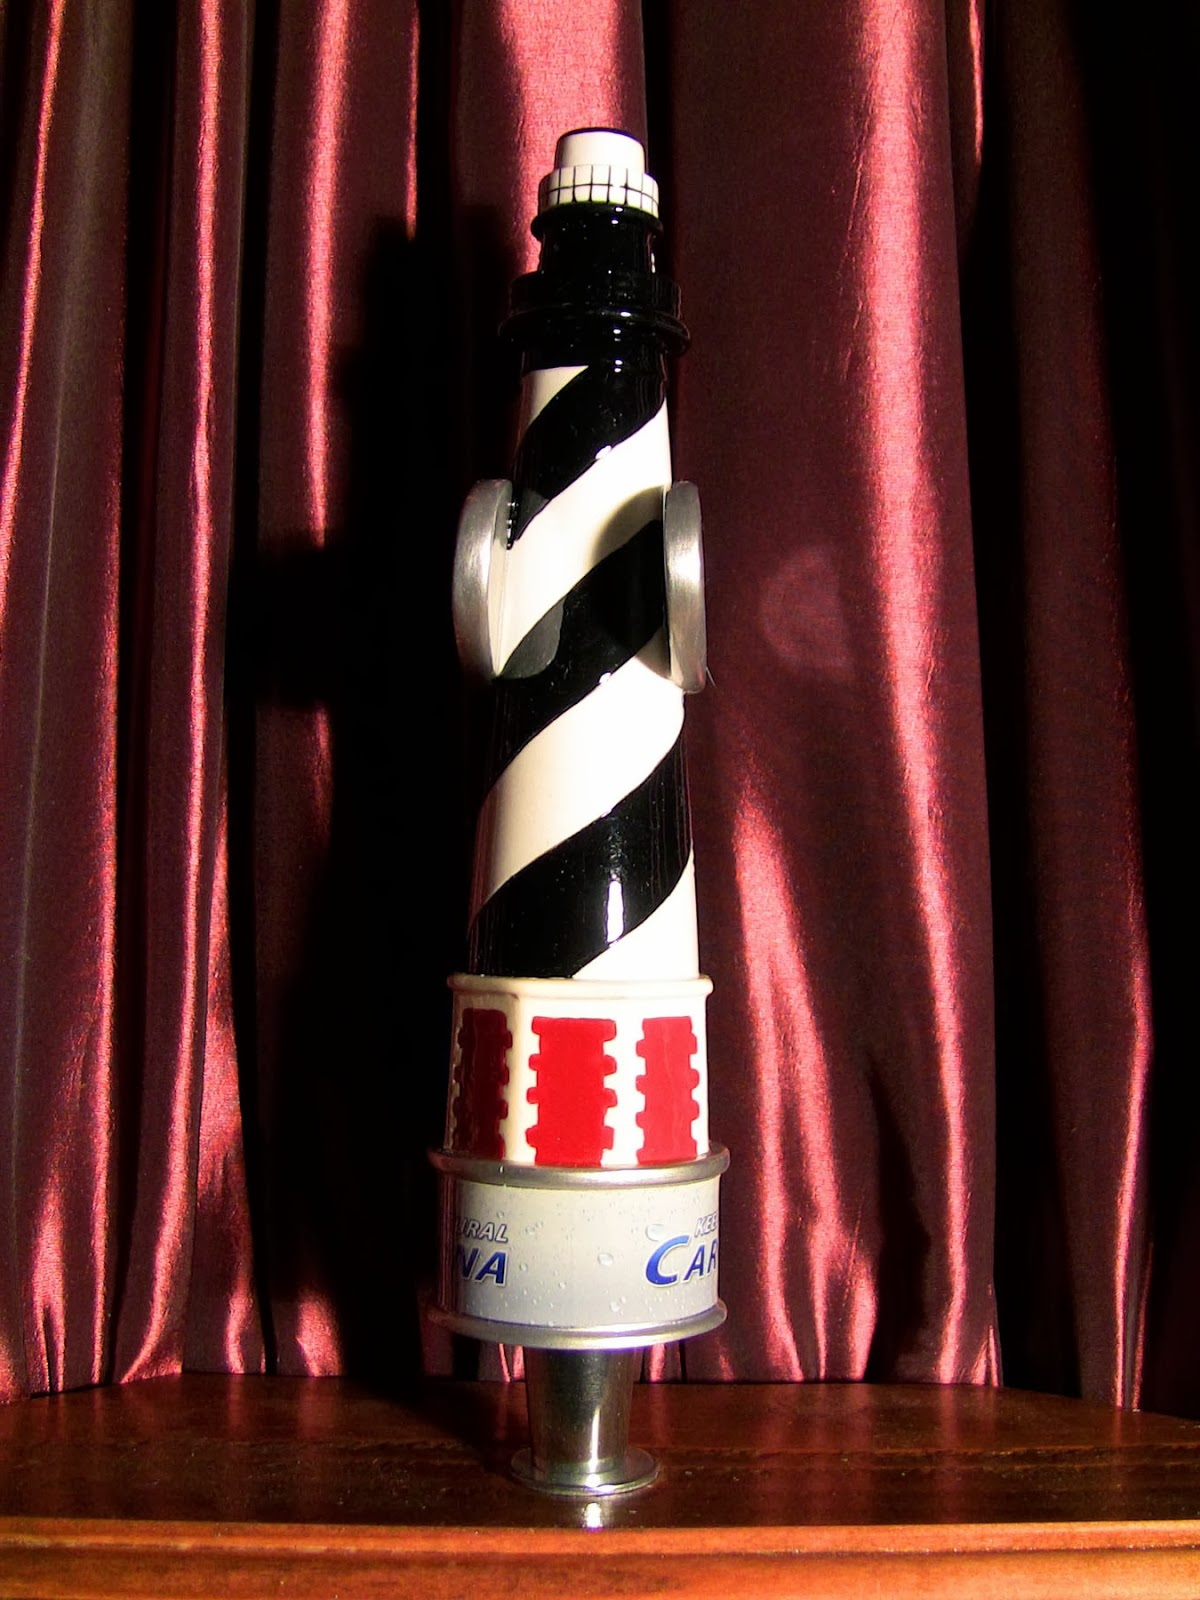 Amazing Tap Handles Tap Handle 378 Anheuser Busch